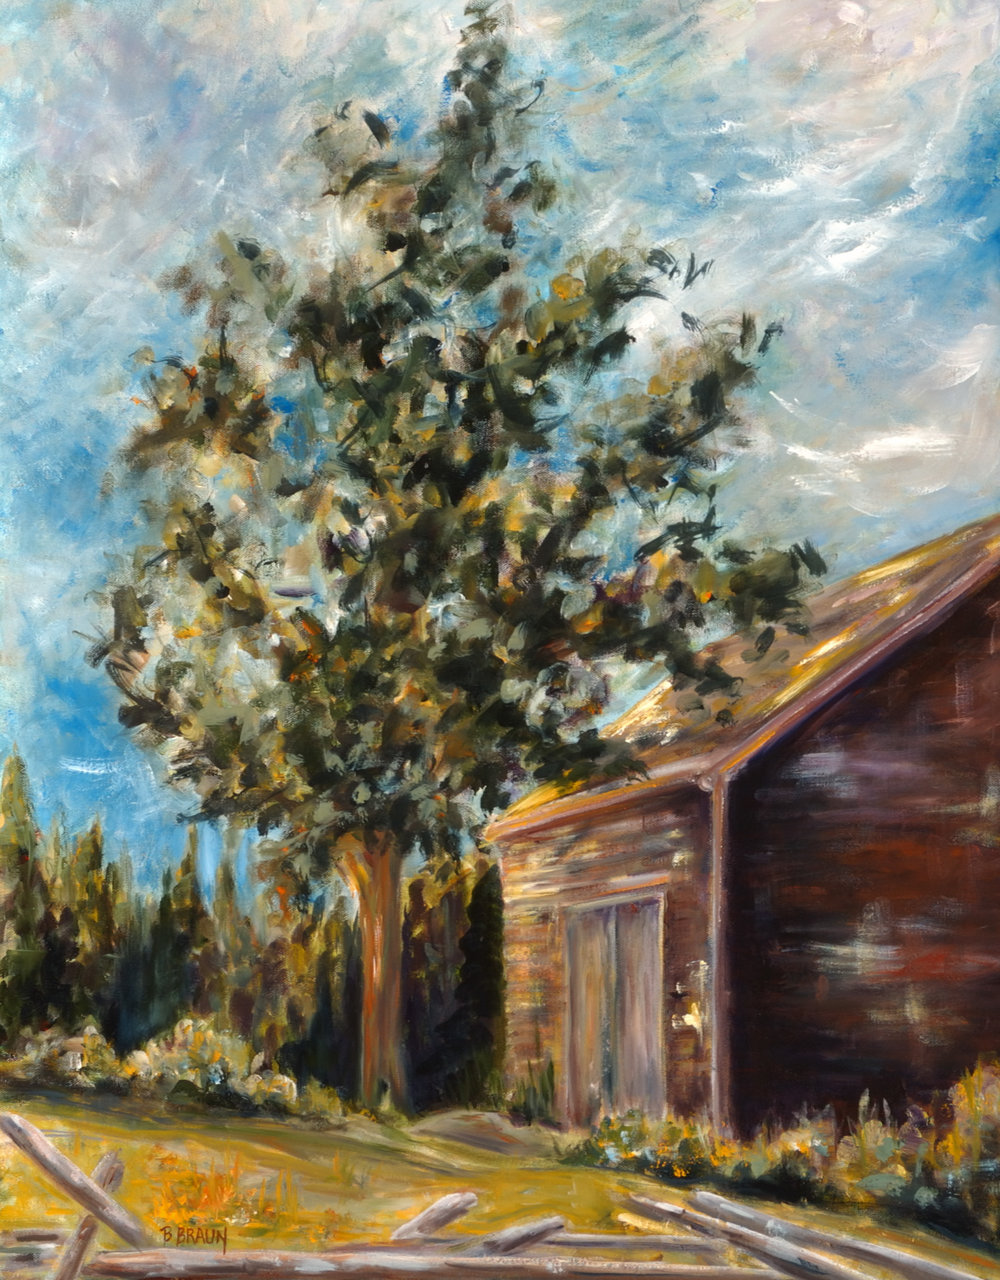 JOHN BROWN'S BARN - SOLD